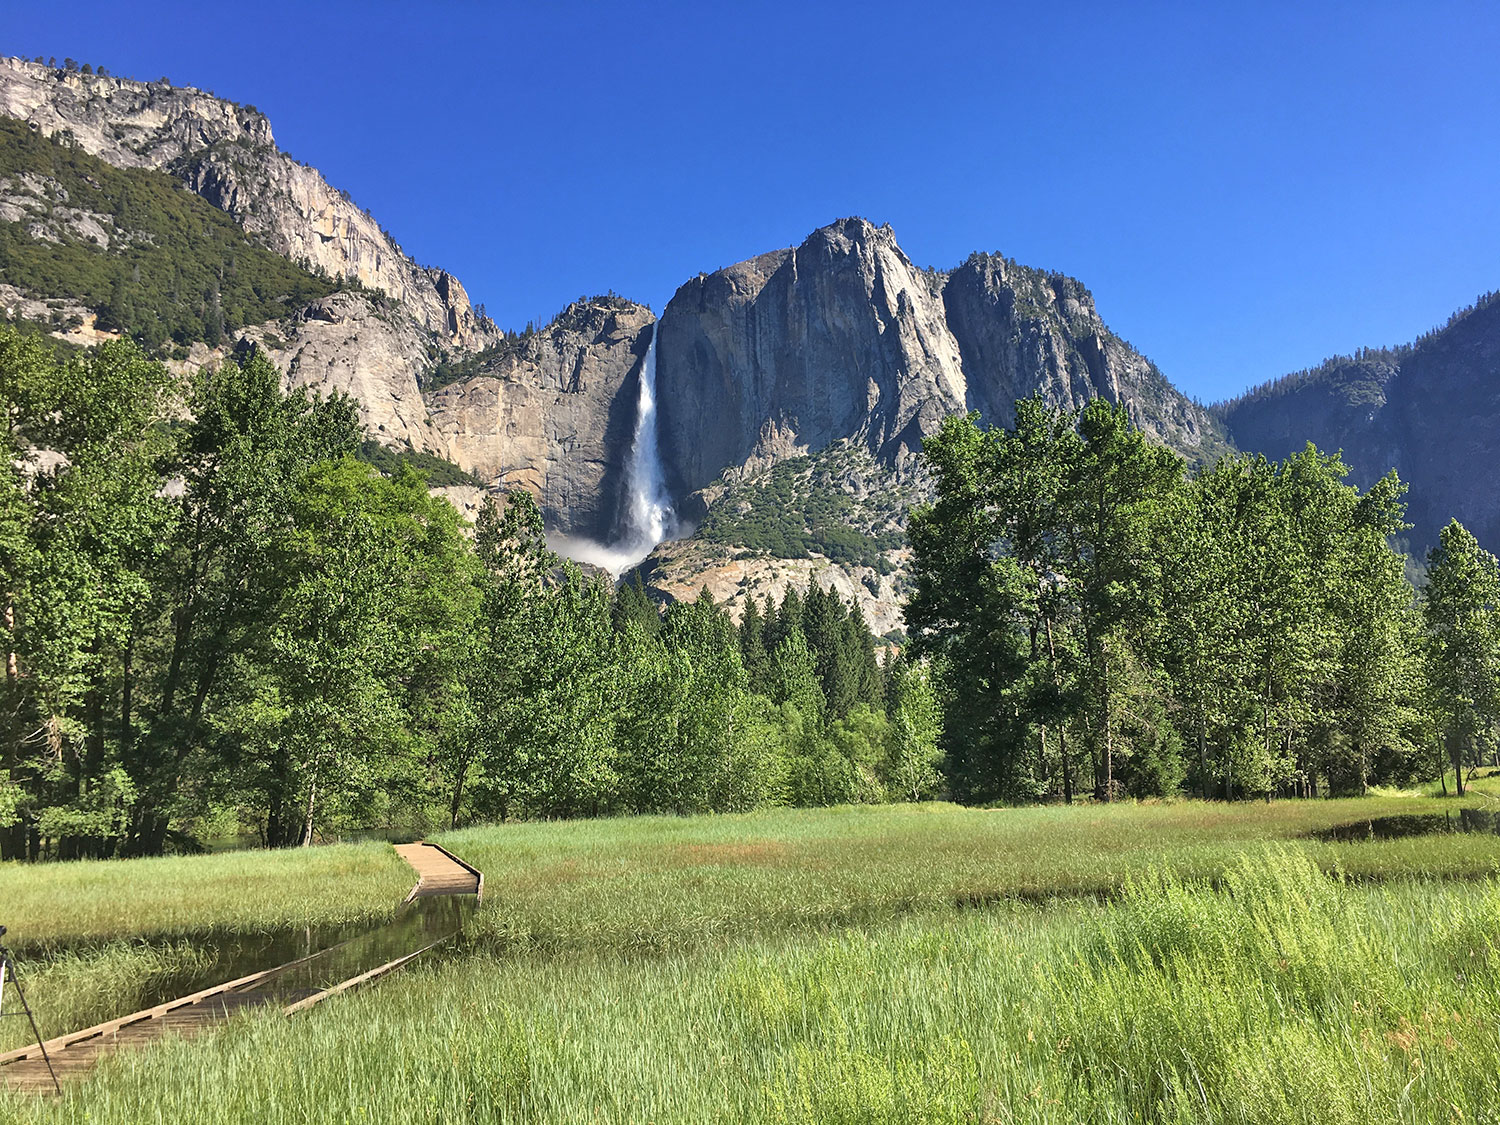 The Yosemite Peregrine Lodge Hikes In Yosemite Valley